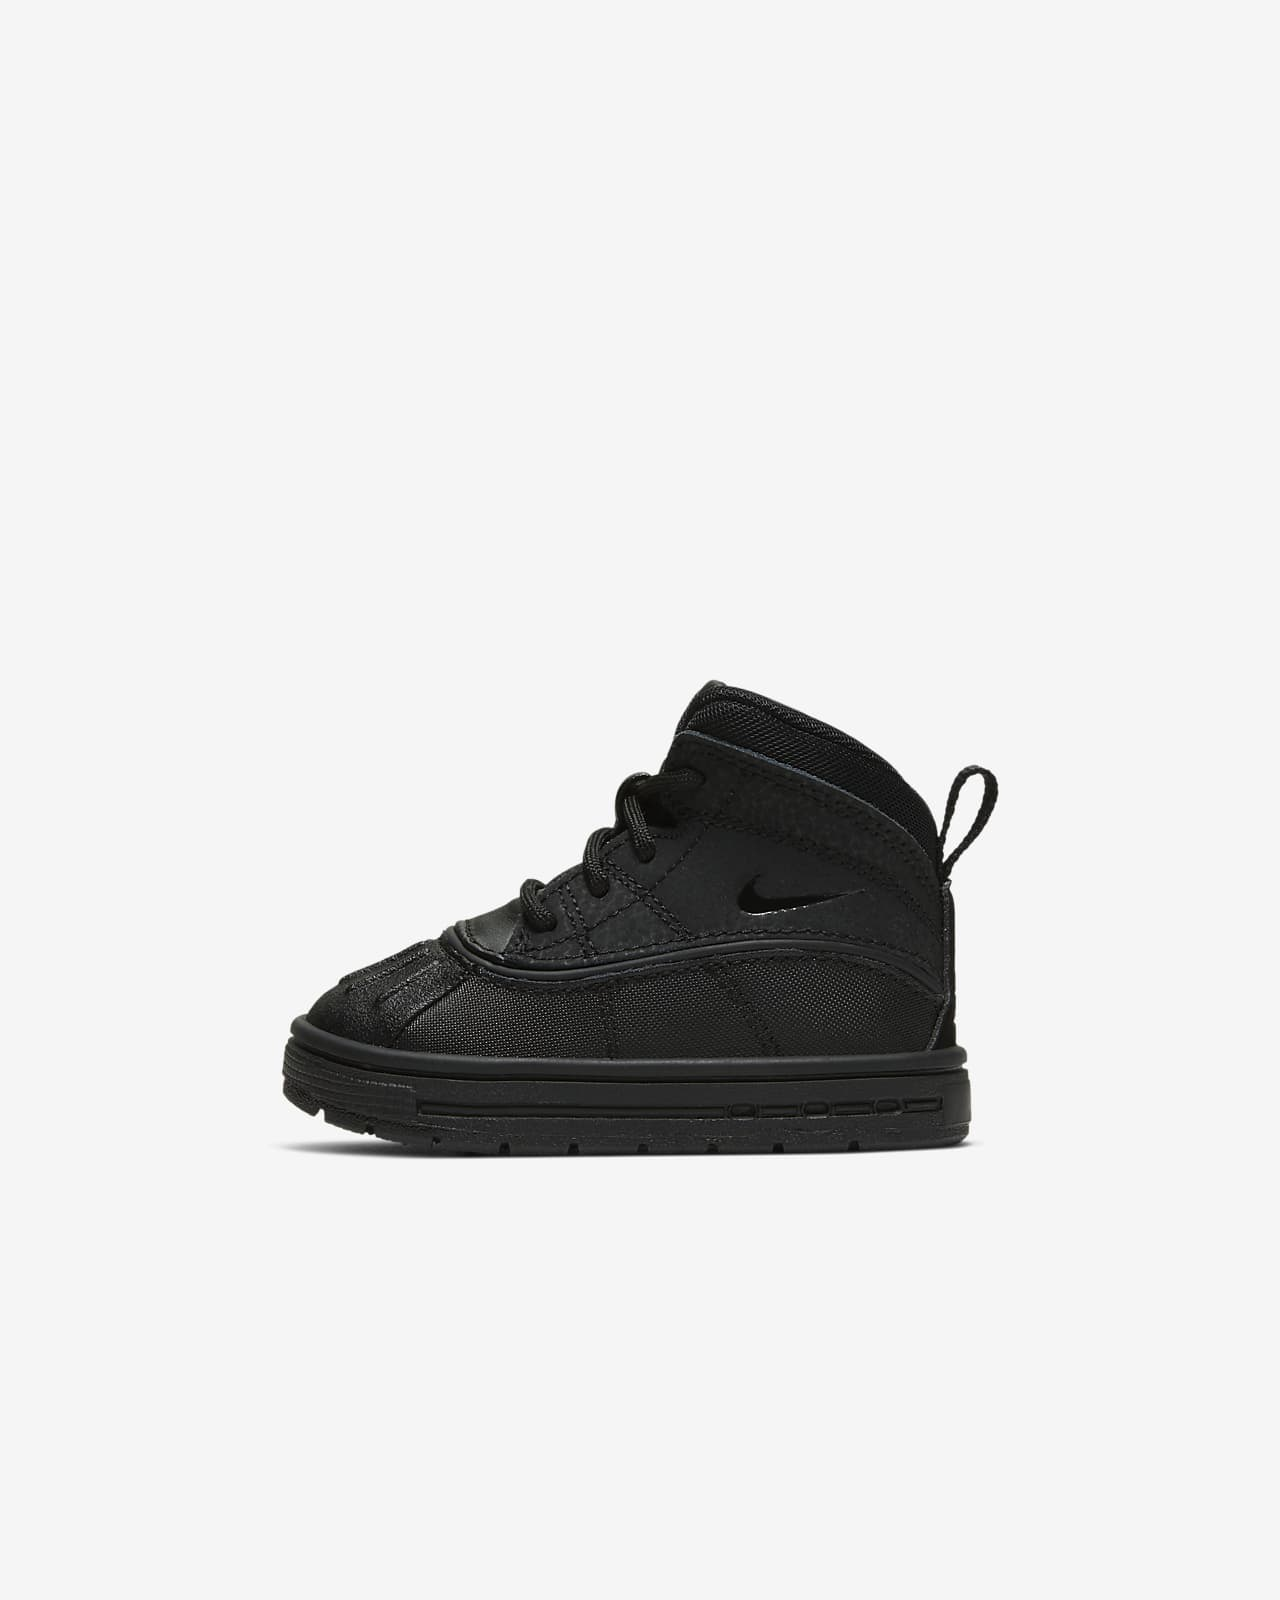 Nike Woodside 2 High ACG Baby/Toddler Boots